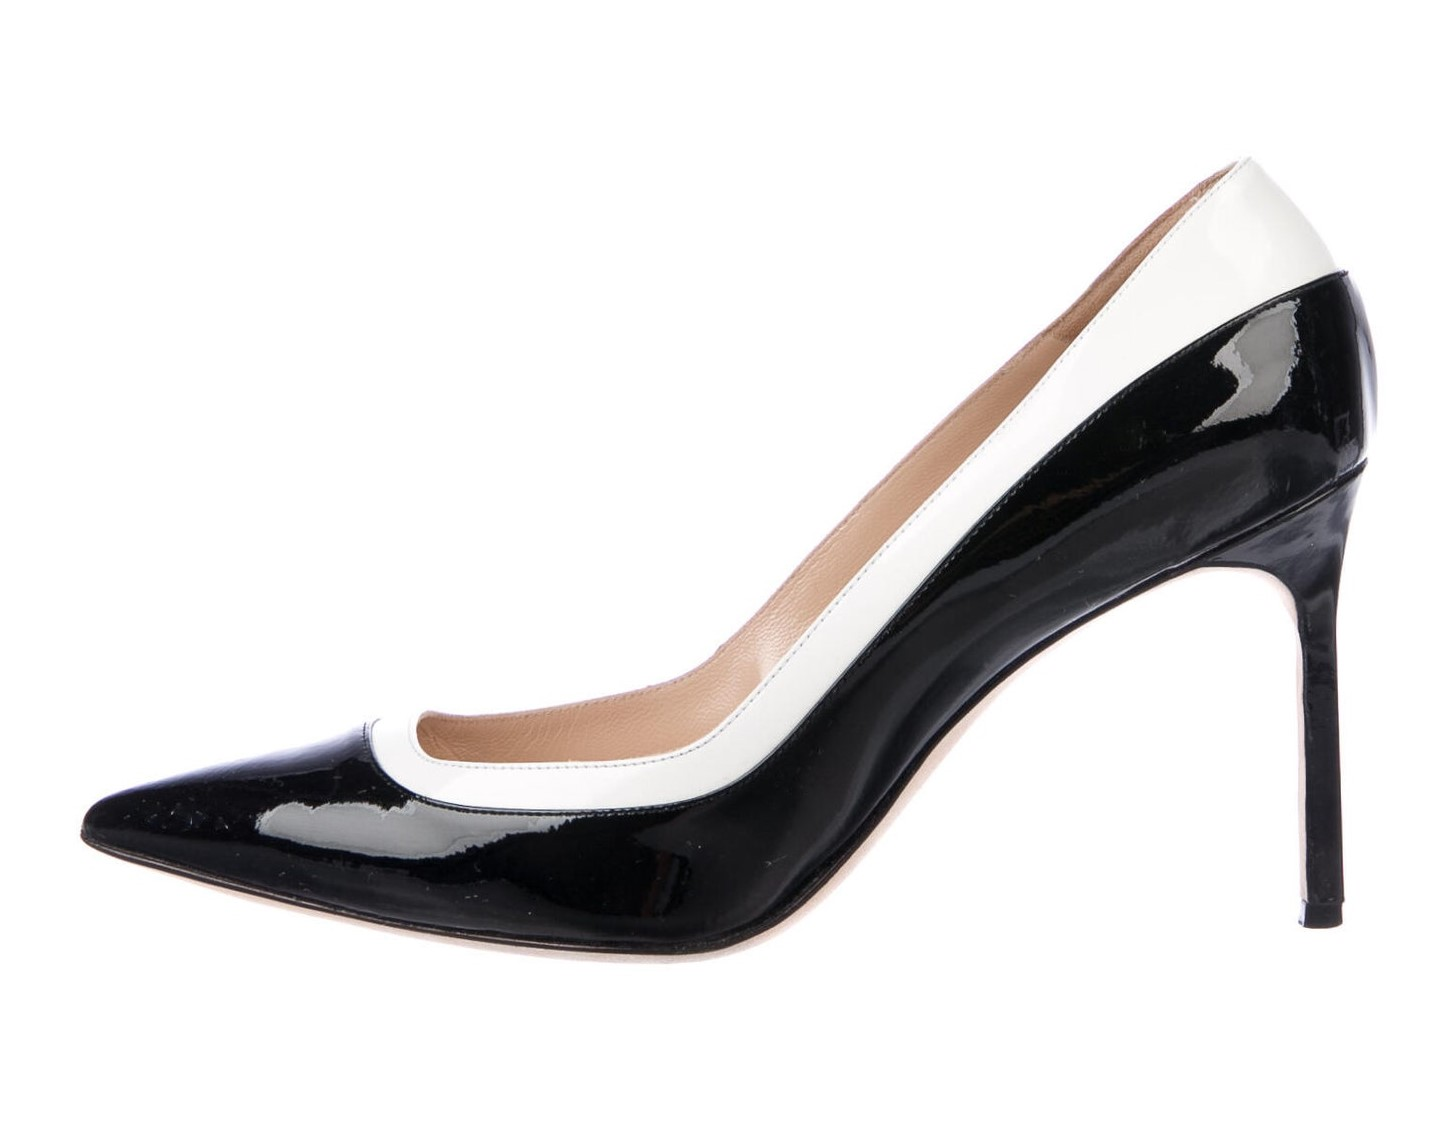 Manolo Blahnik Black and White Patent Pumps